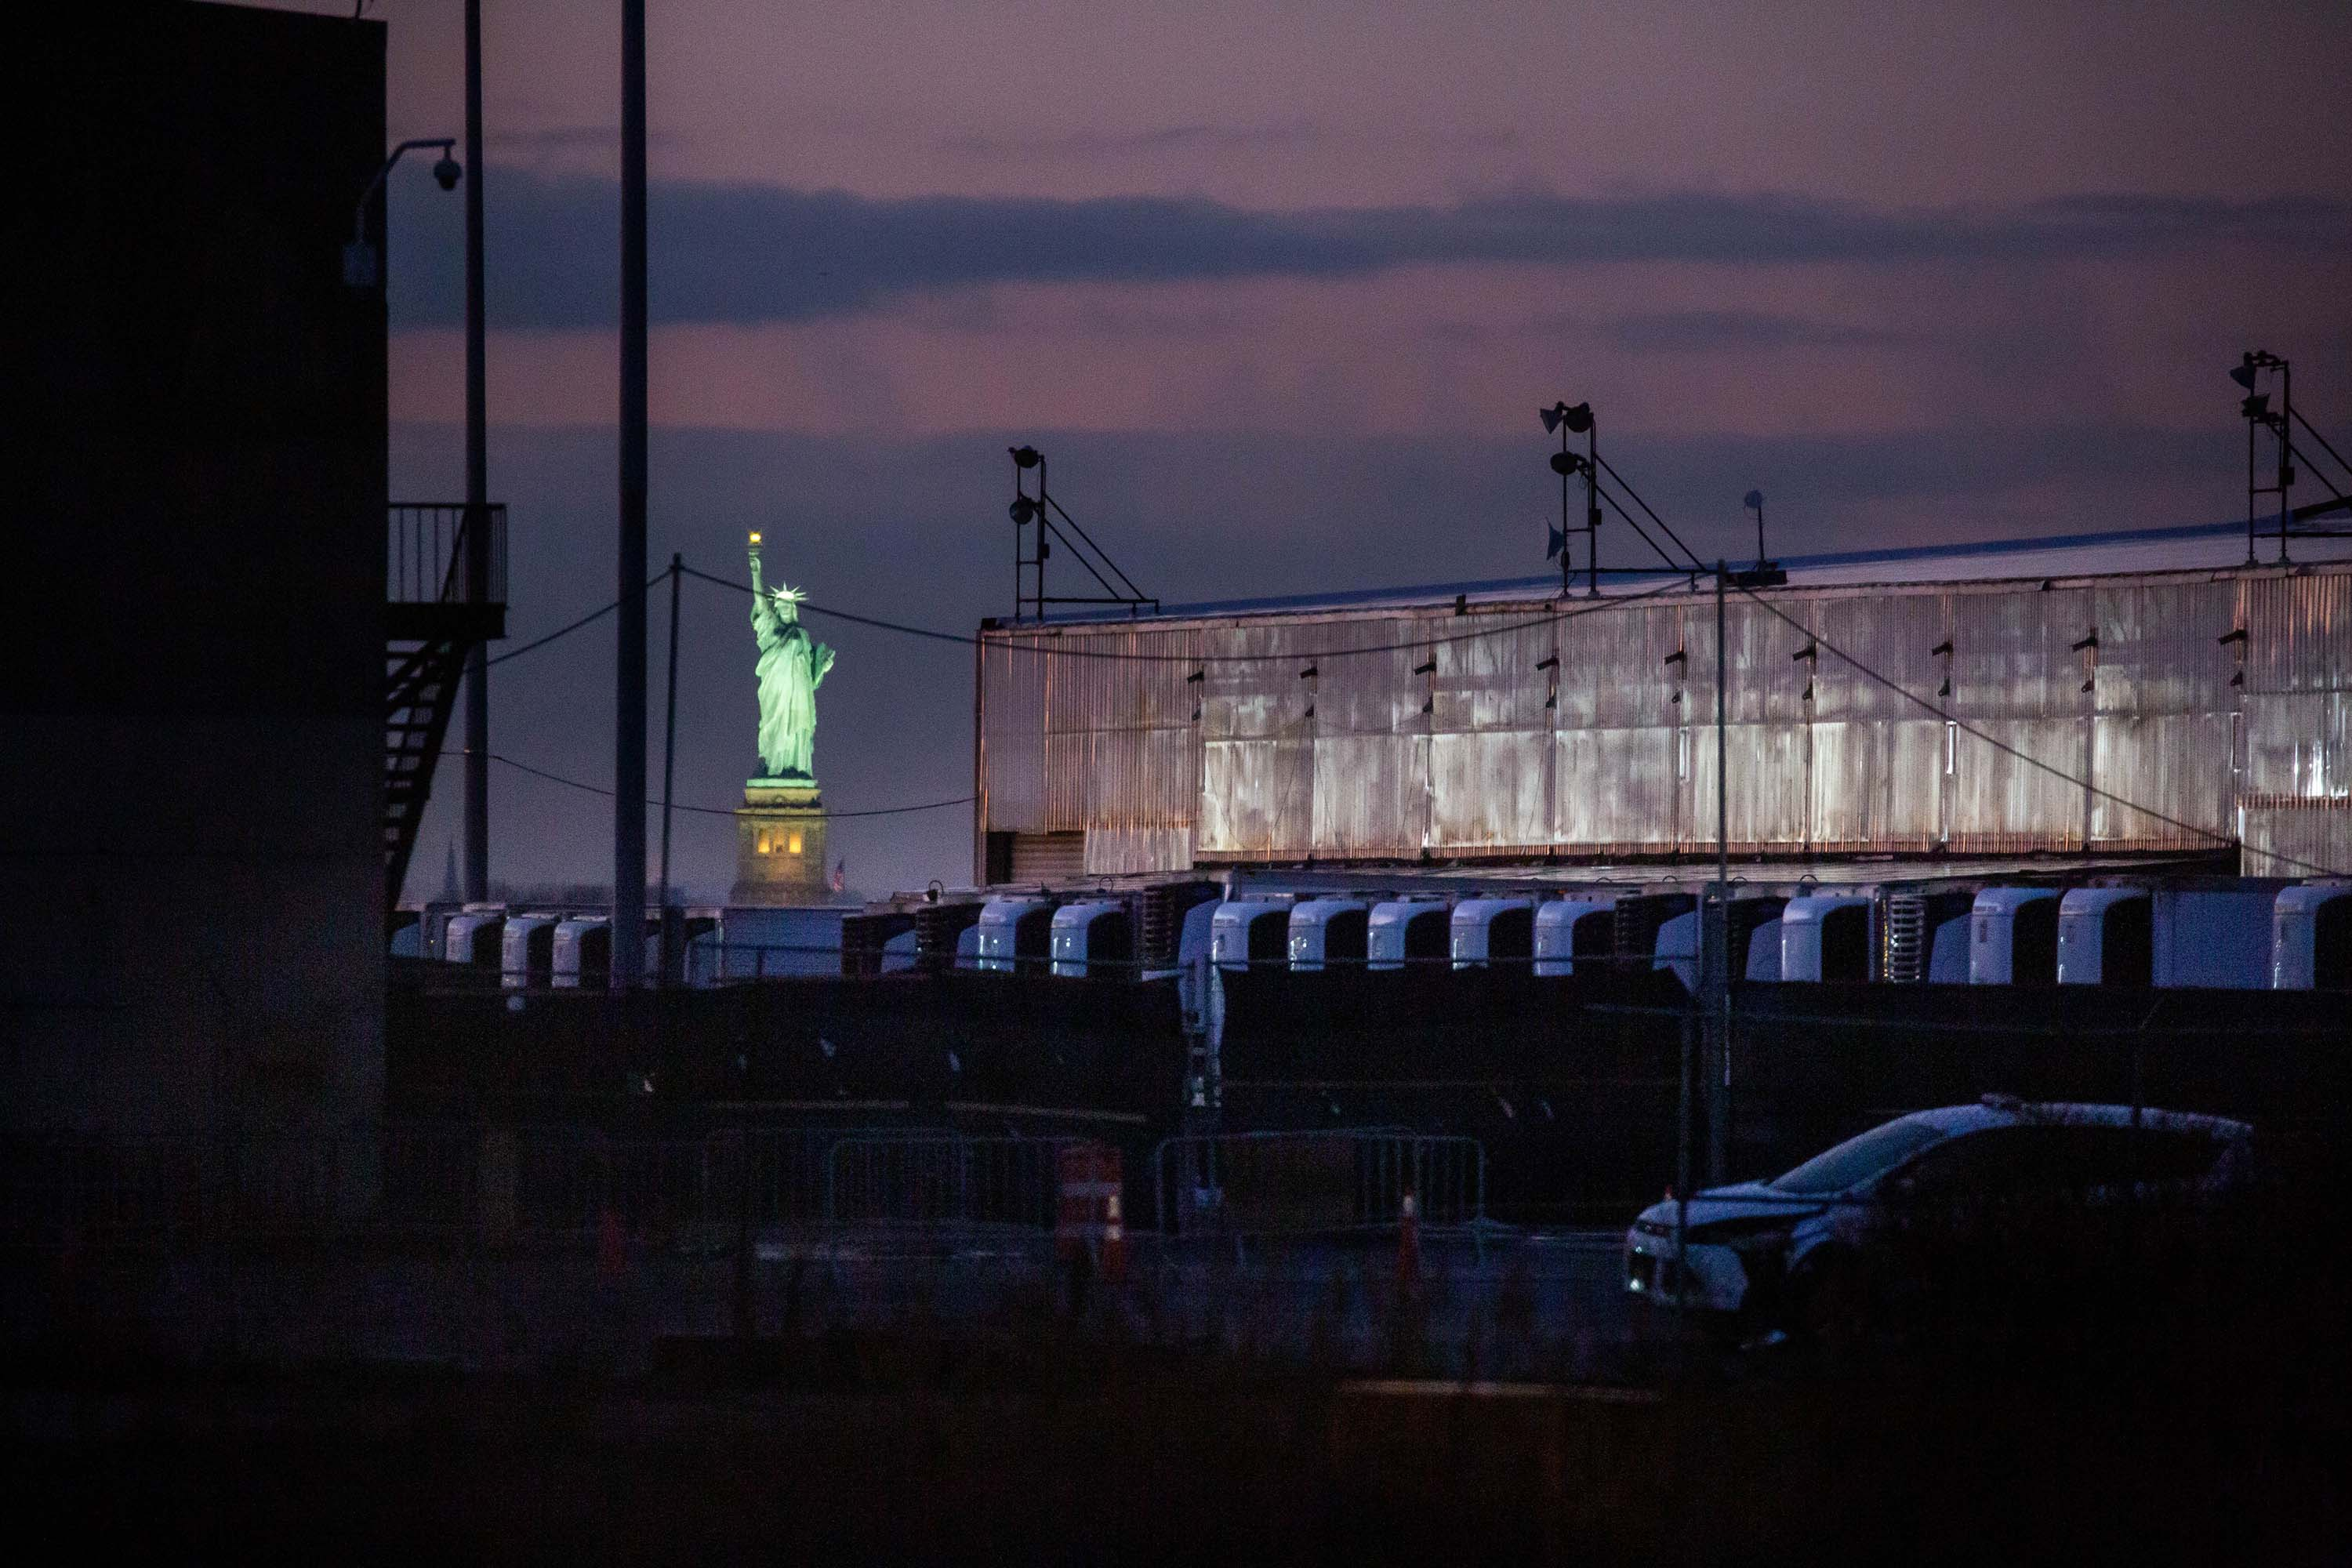 A Covid-19 disaster morgue made up of refrigerated trailers is pictured at the South Brooklyn Marine Terminal in New York, on December 14.